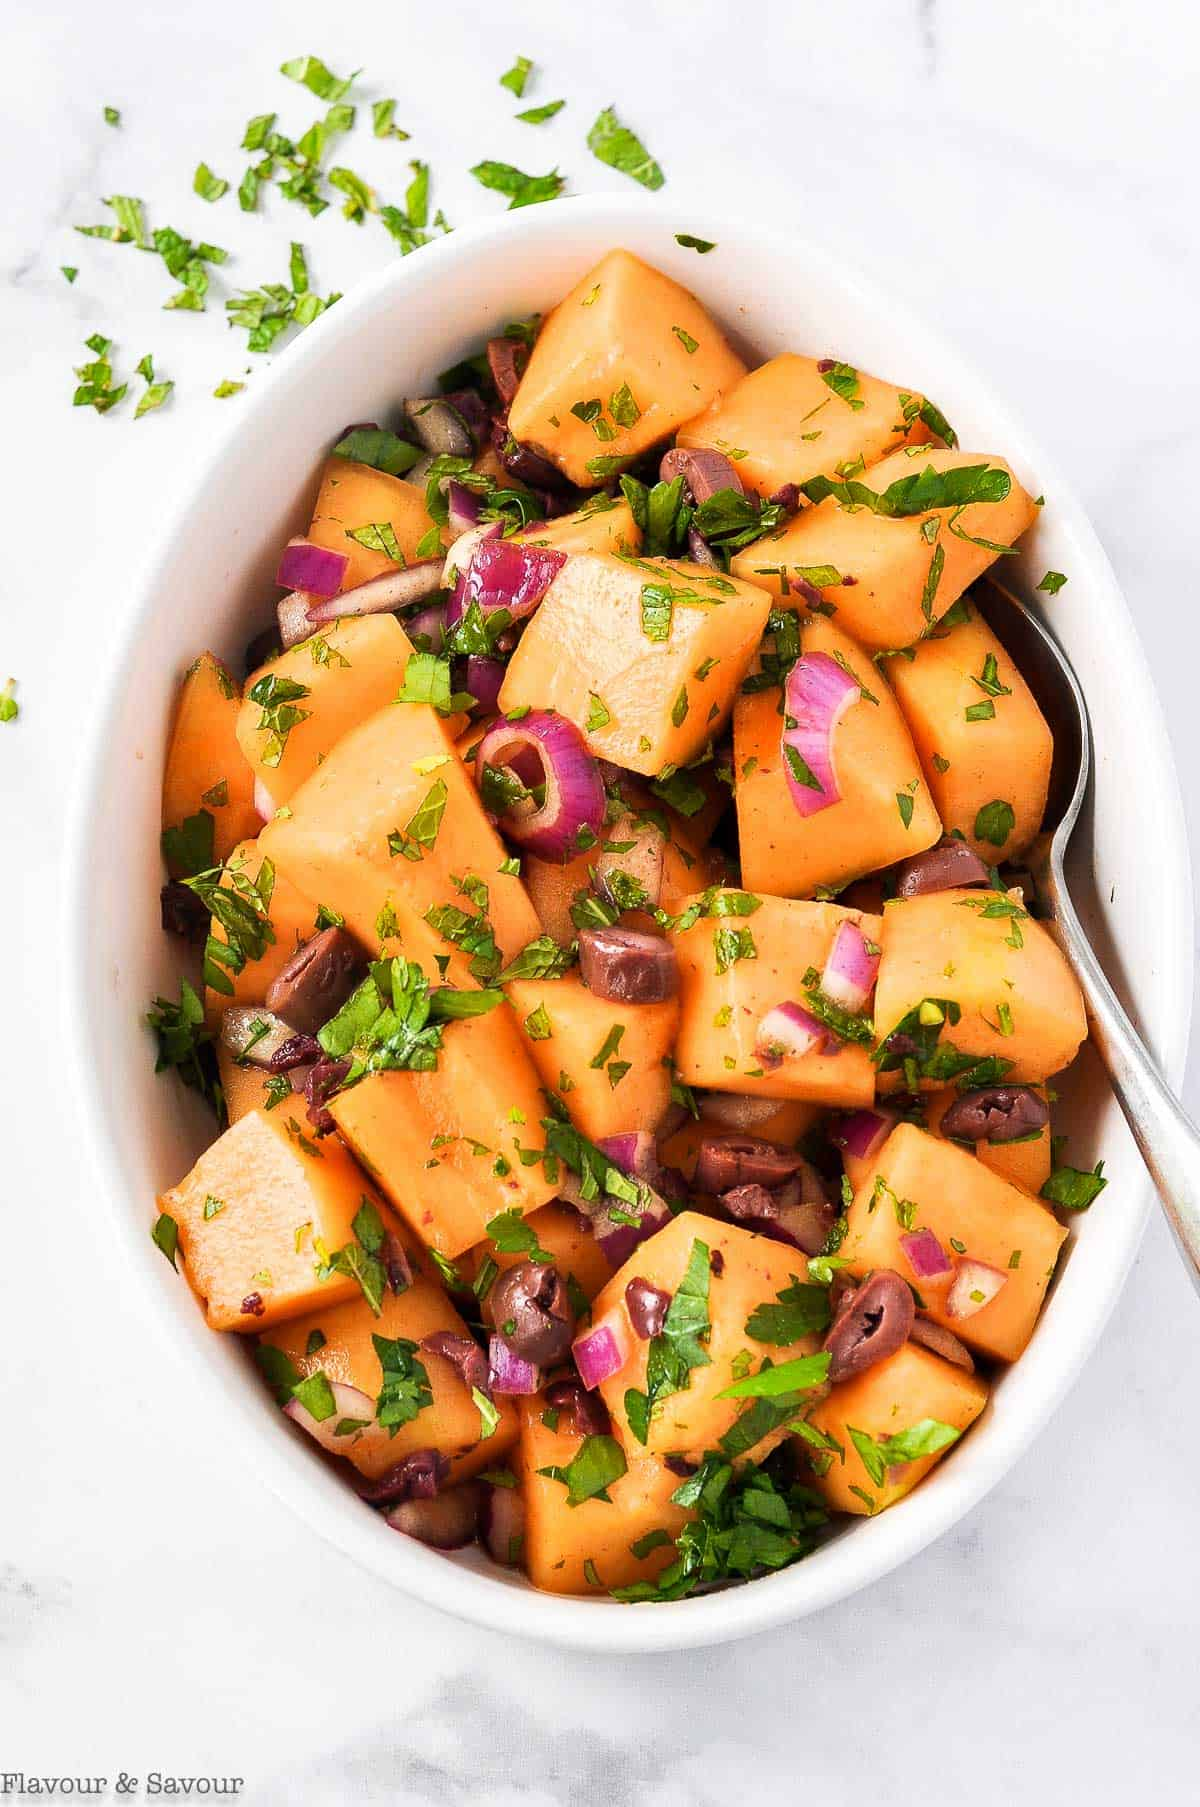 Overhead view of Mediterranean Cantaloupe Salad with olives, red onion, chopped parsley and mint leaves.